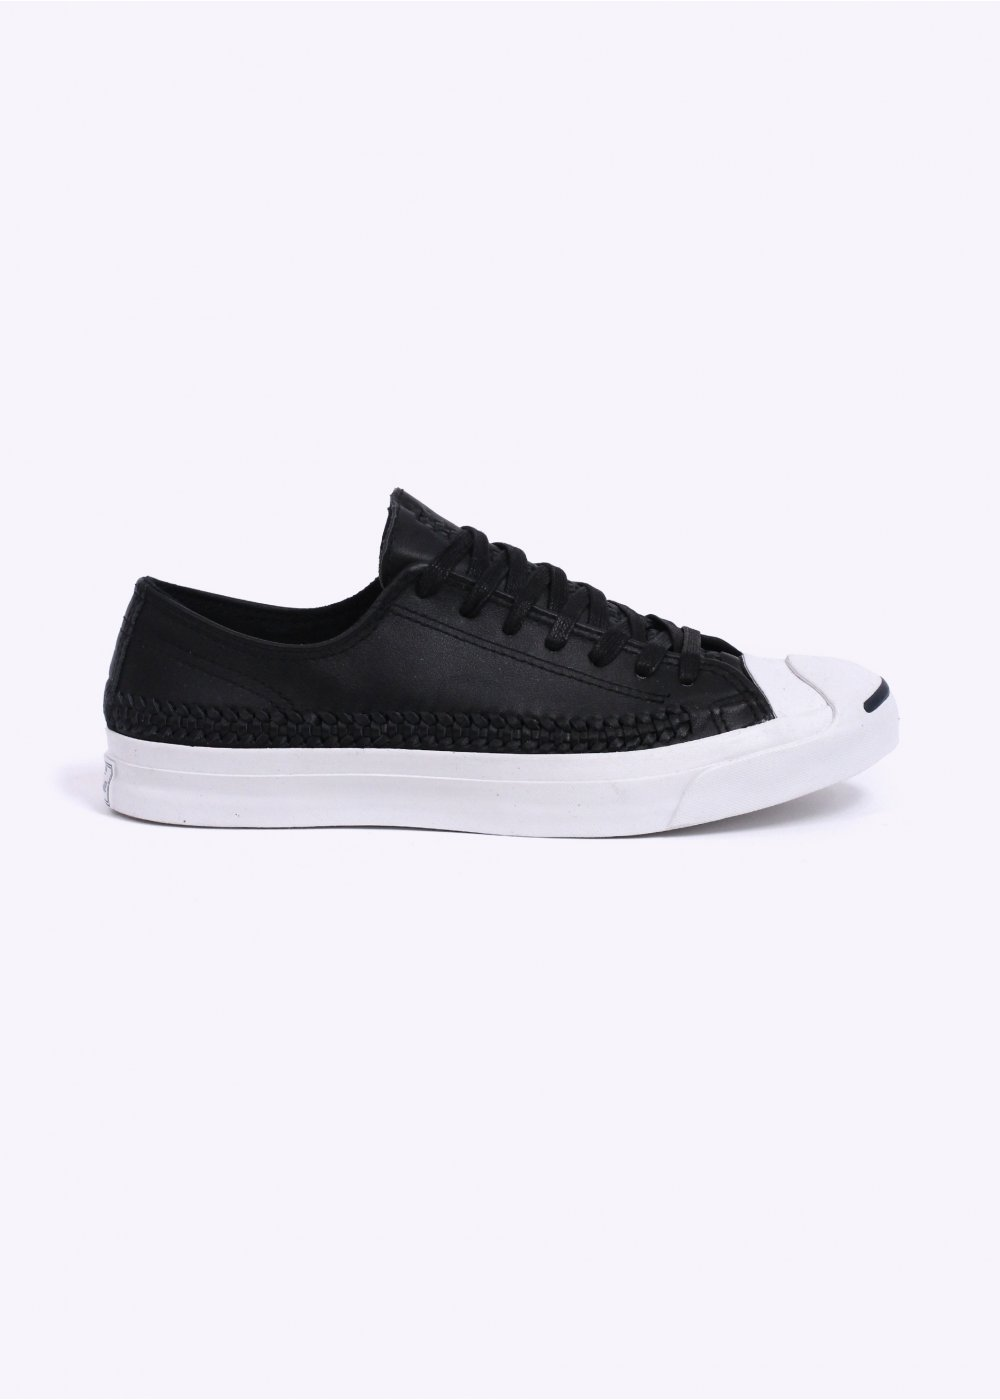 c7210c04a32b Converse Jack Purcell Woven Ox - Black   White